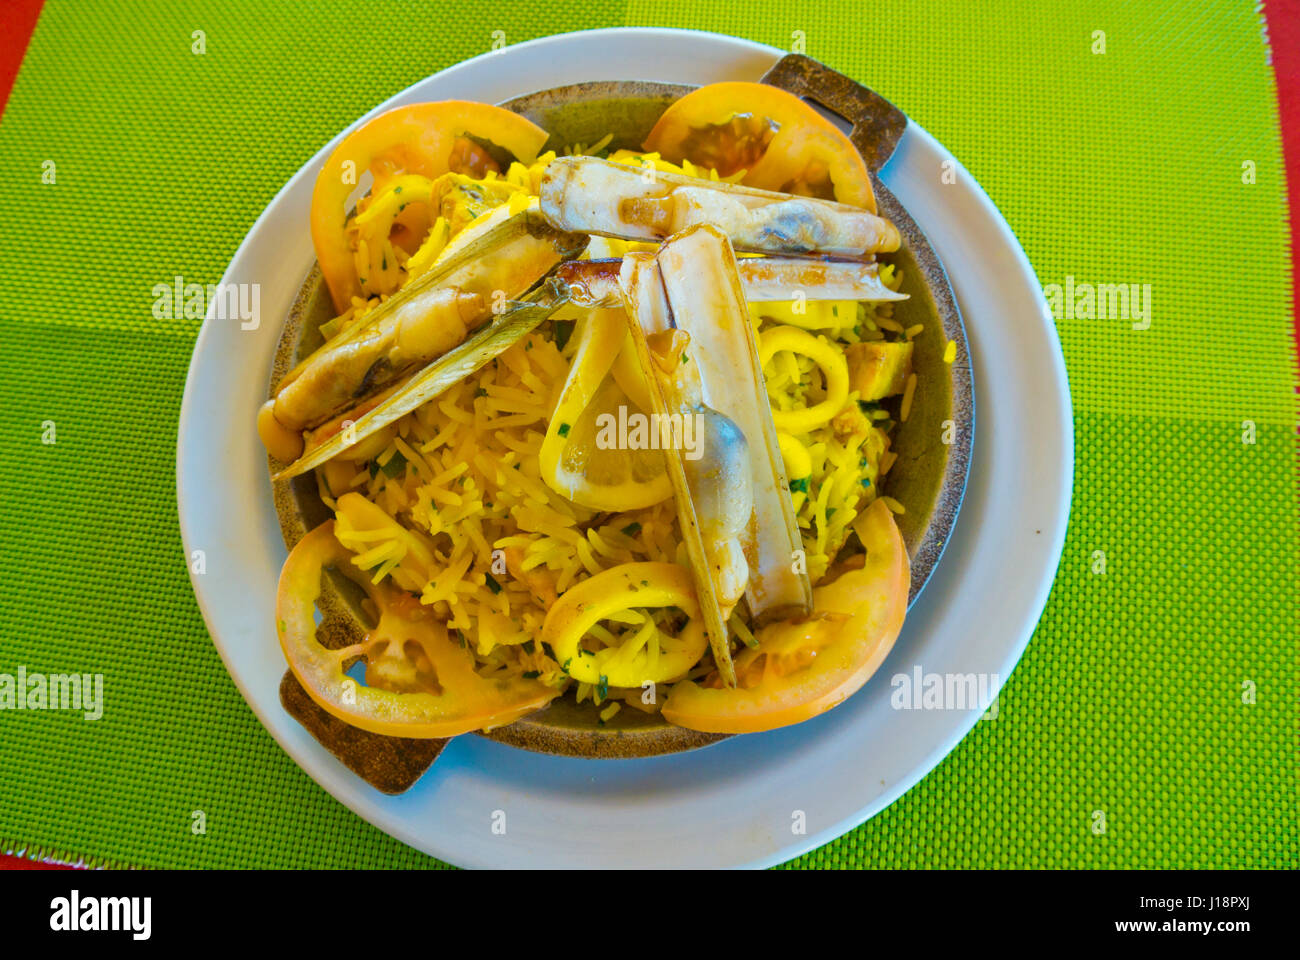 Seafood paella, Dakhla, Western Sahara, administered by Morocco, Africa - Stock Image